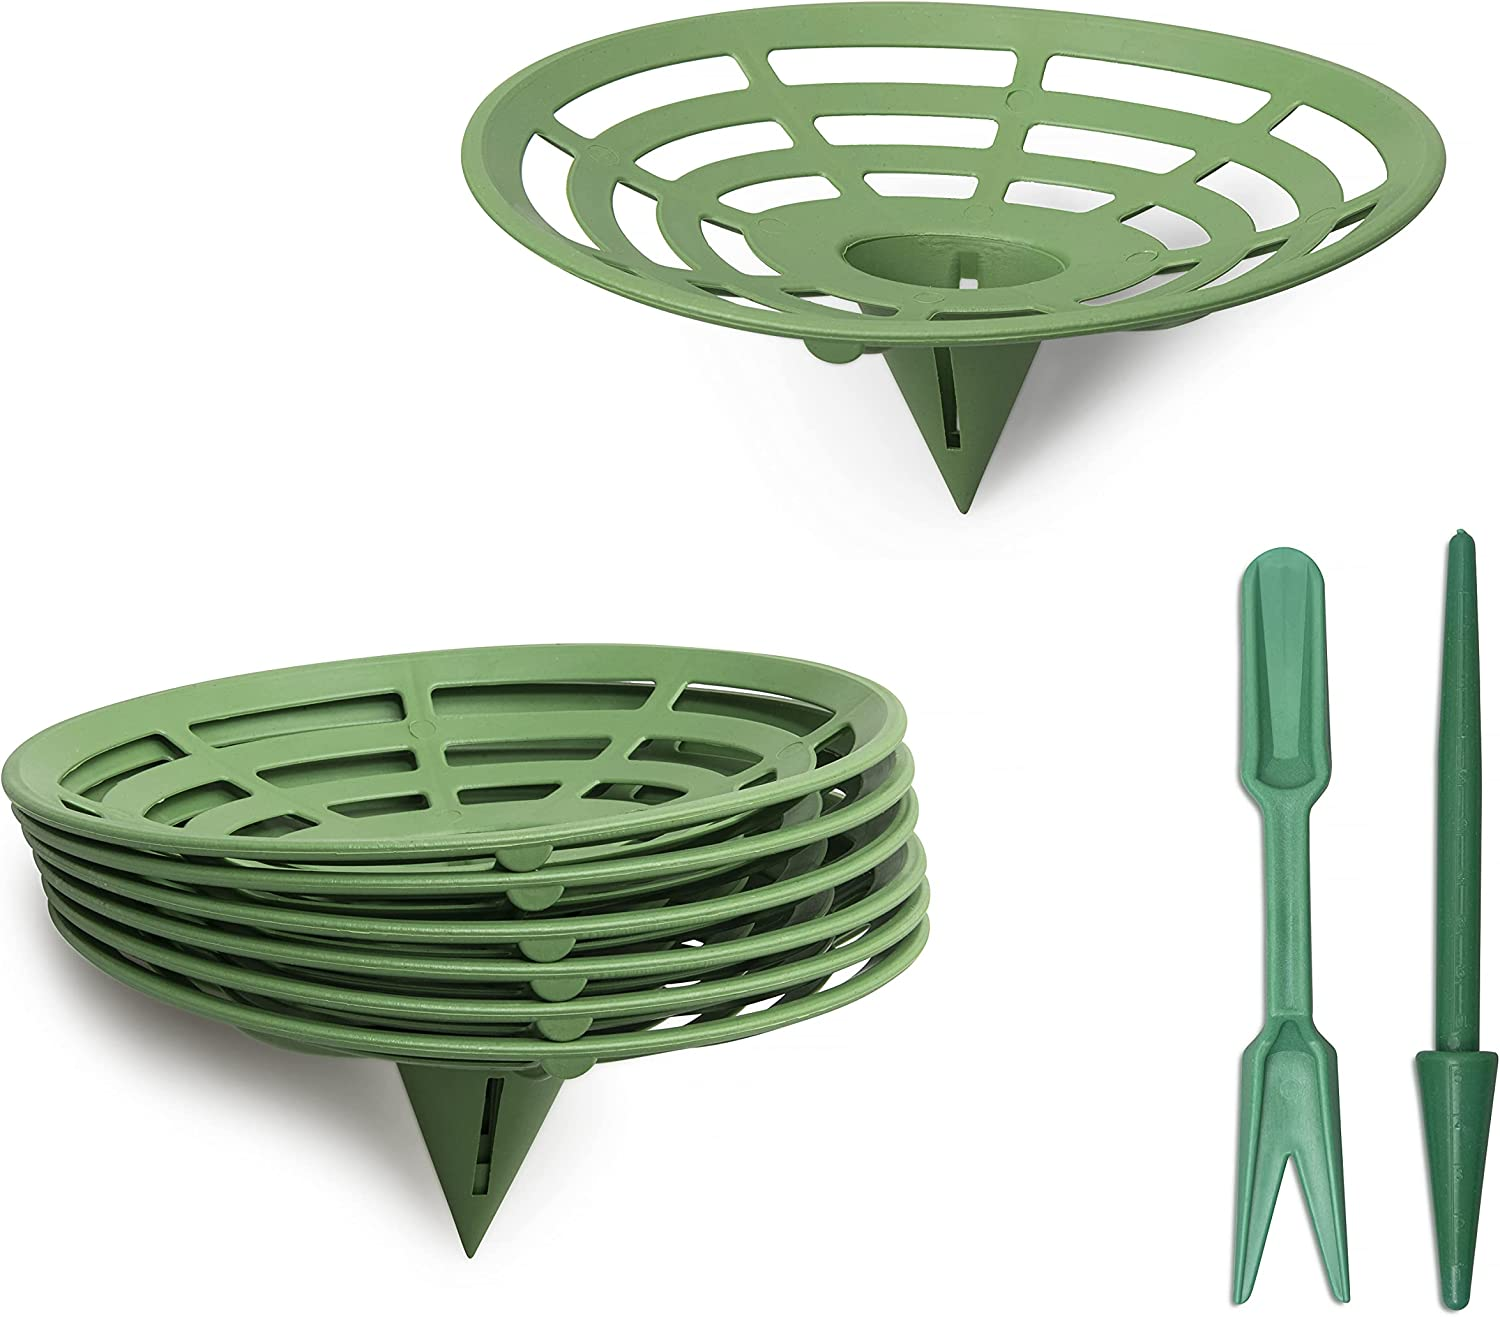 Gebrent Melon Cradles - 6 Pack of Heavy Duty Plastic Fruit and Veg Support Stands for Squash, Cantaloupe, Pumpkins - Complete with Widger and Dibber Gardening Tools